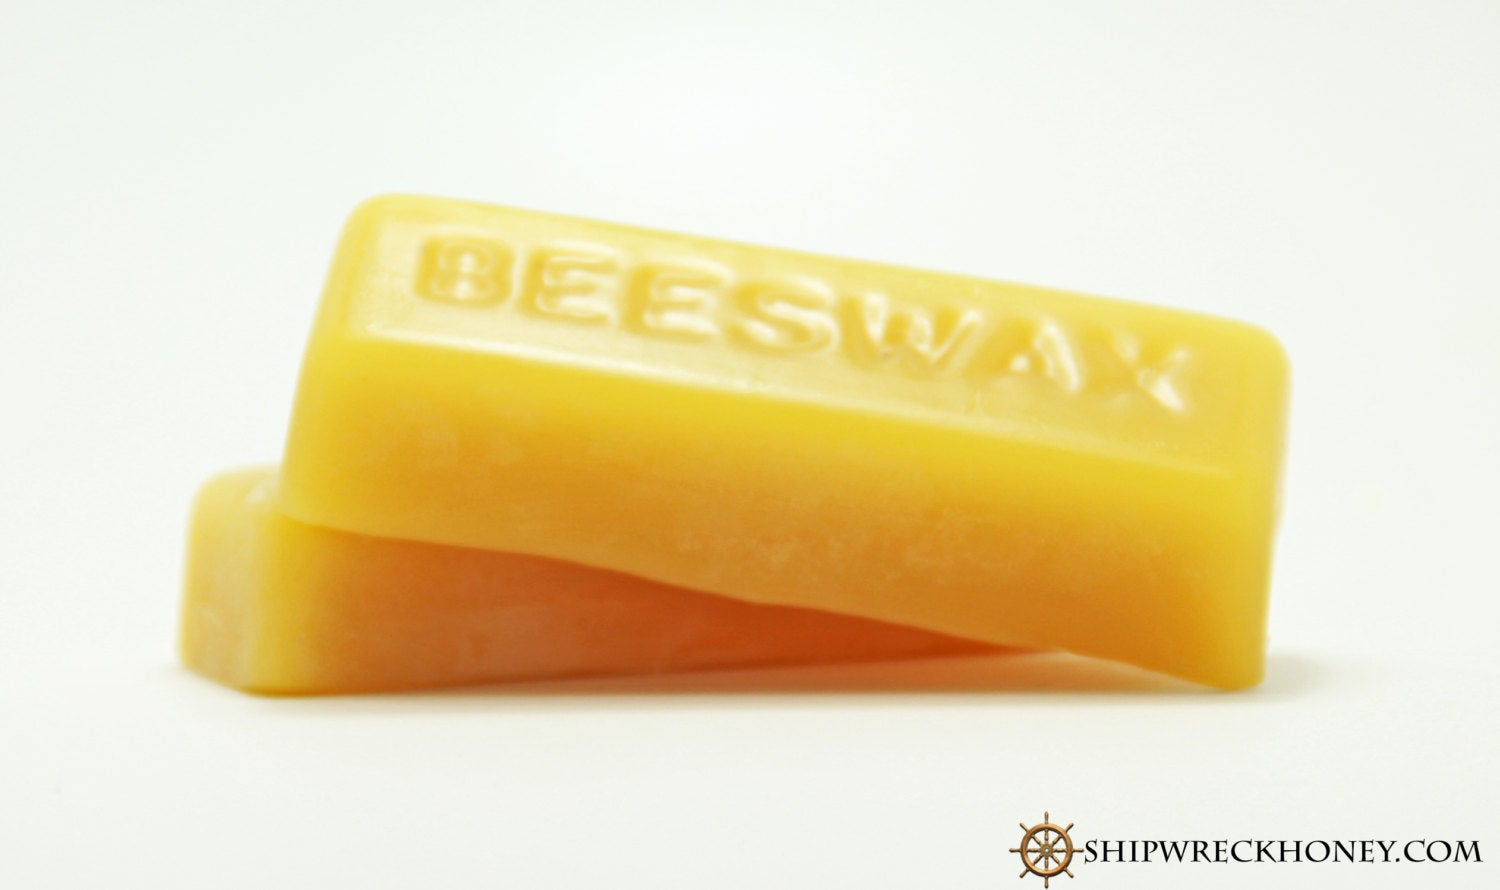 Beeswax Bar: 1oz